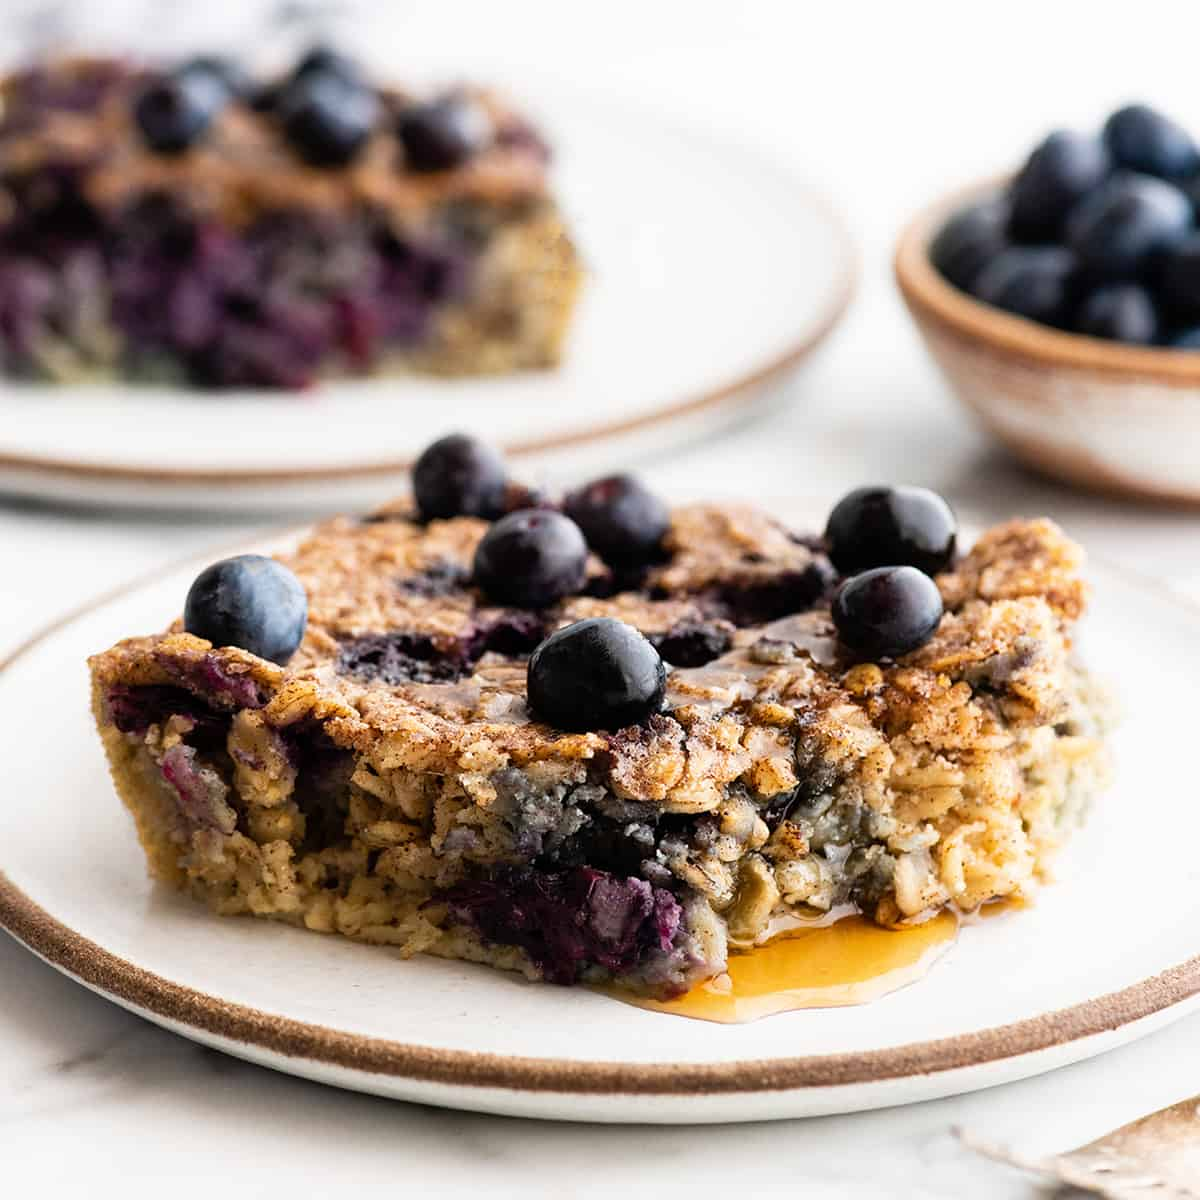 front view of a piece of blueberry baked oatmeal on a plate